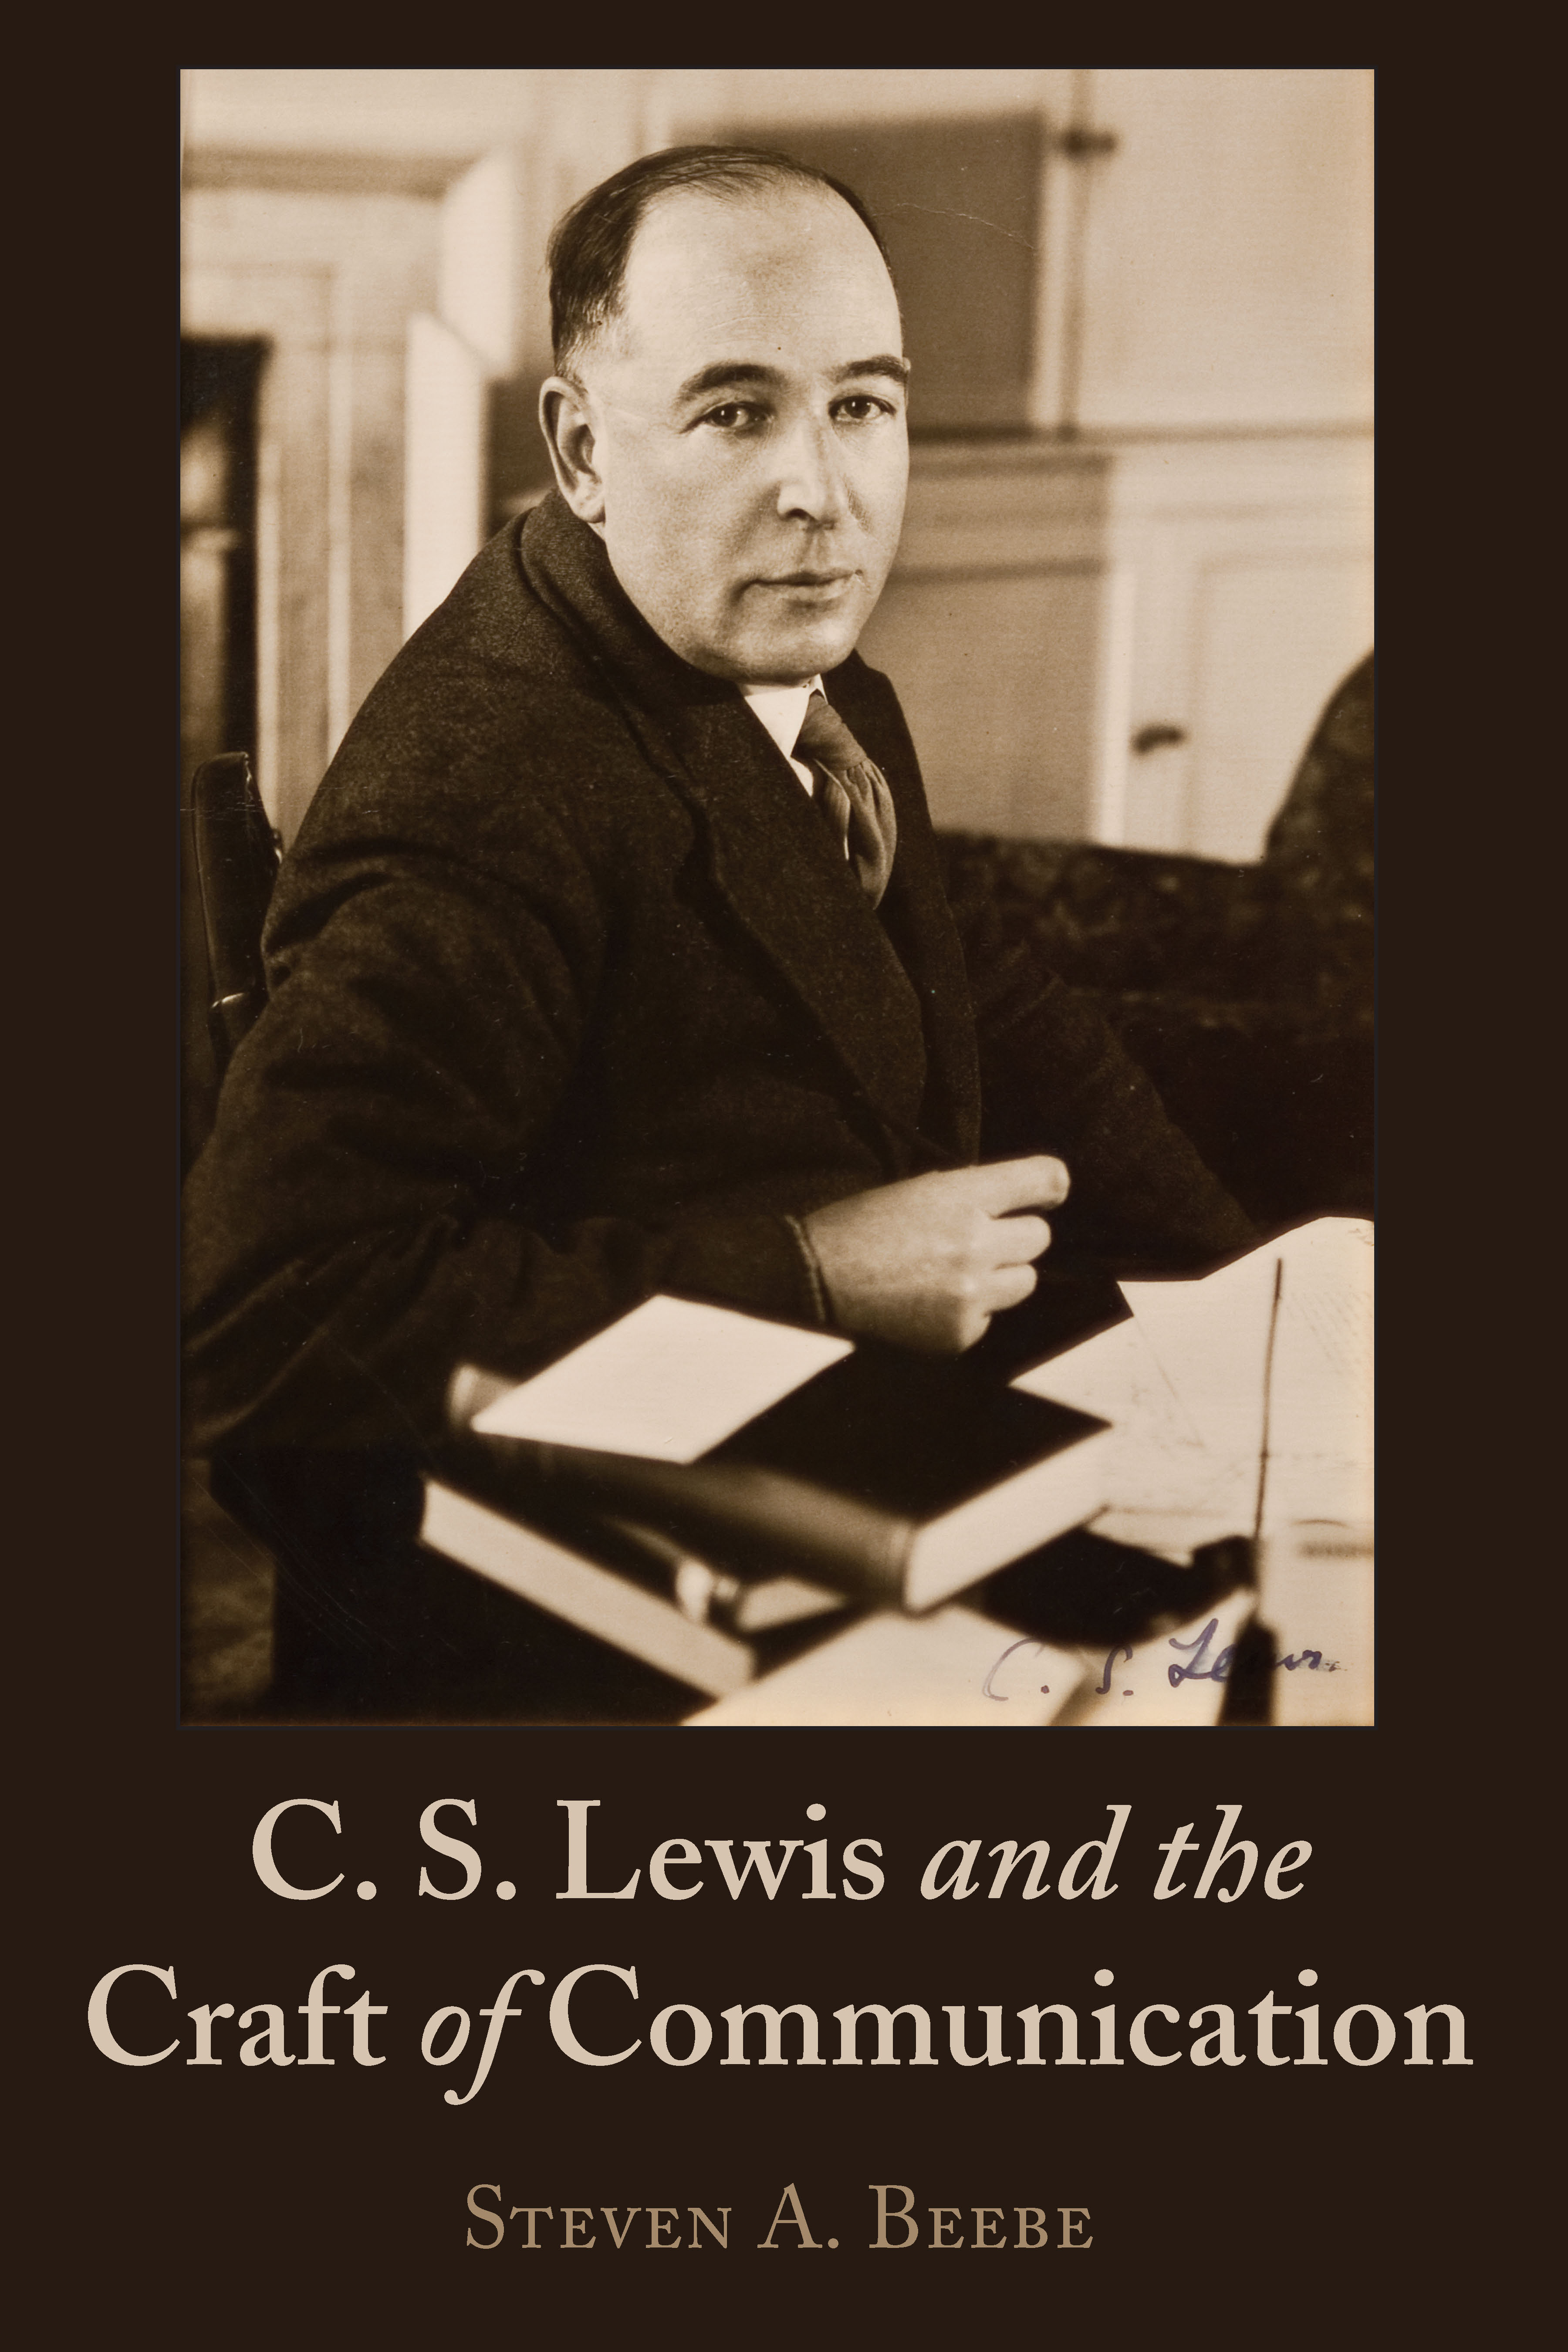 Book Talk: C.S. Lewis and the Craft of Communication by Steven Beebe